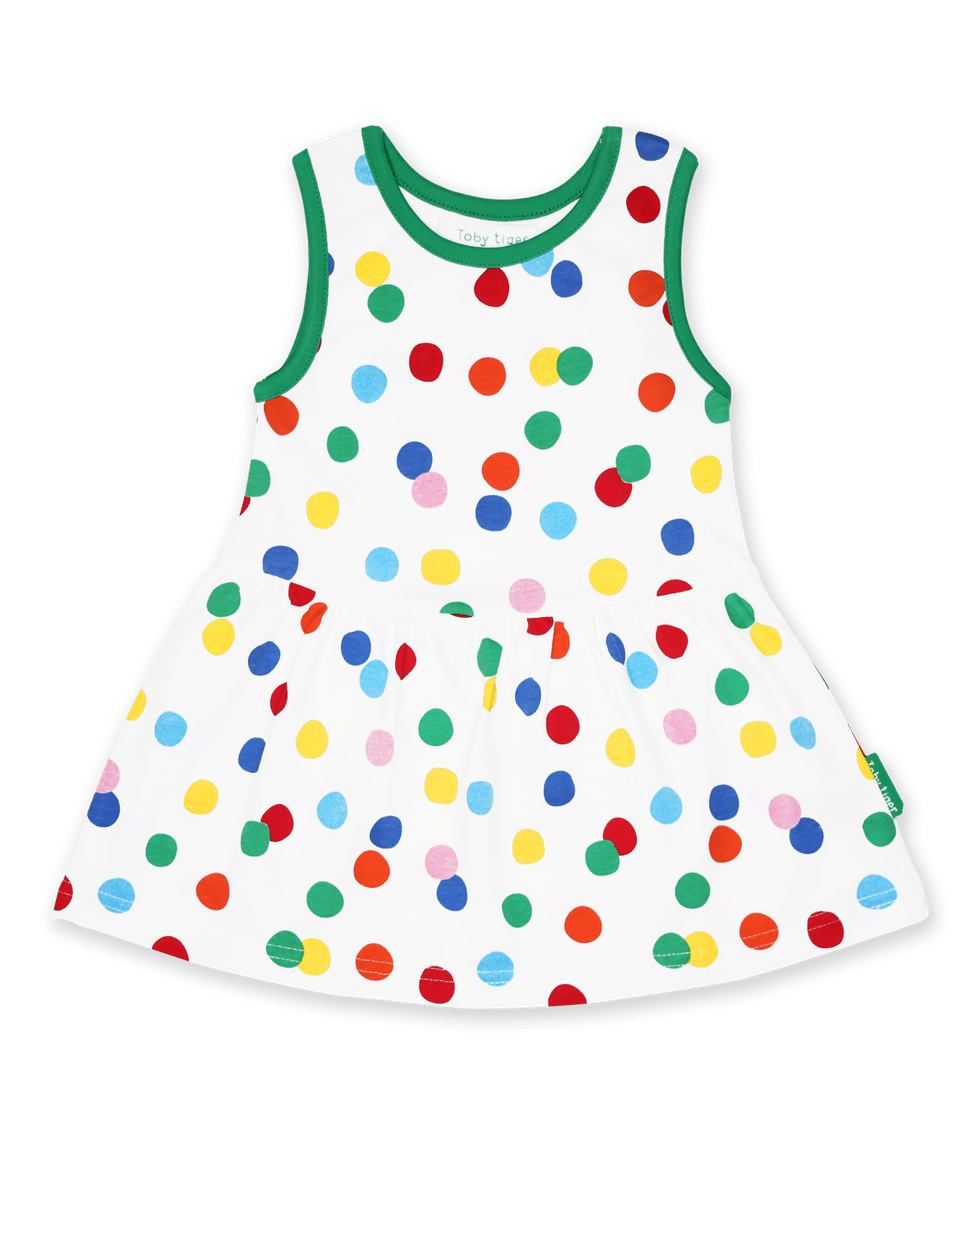 Toby Tiger Confetti Print Twirl Dress